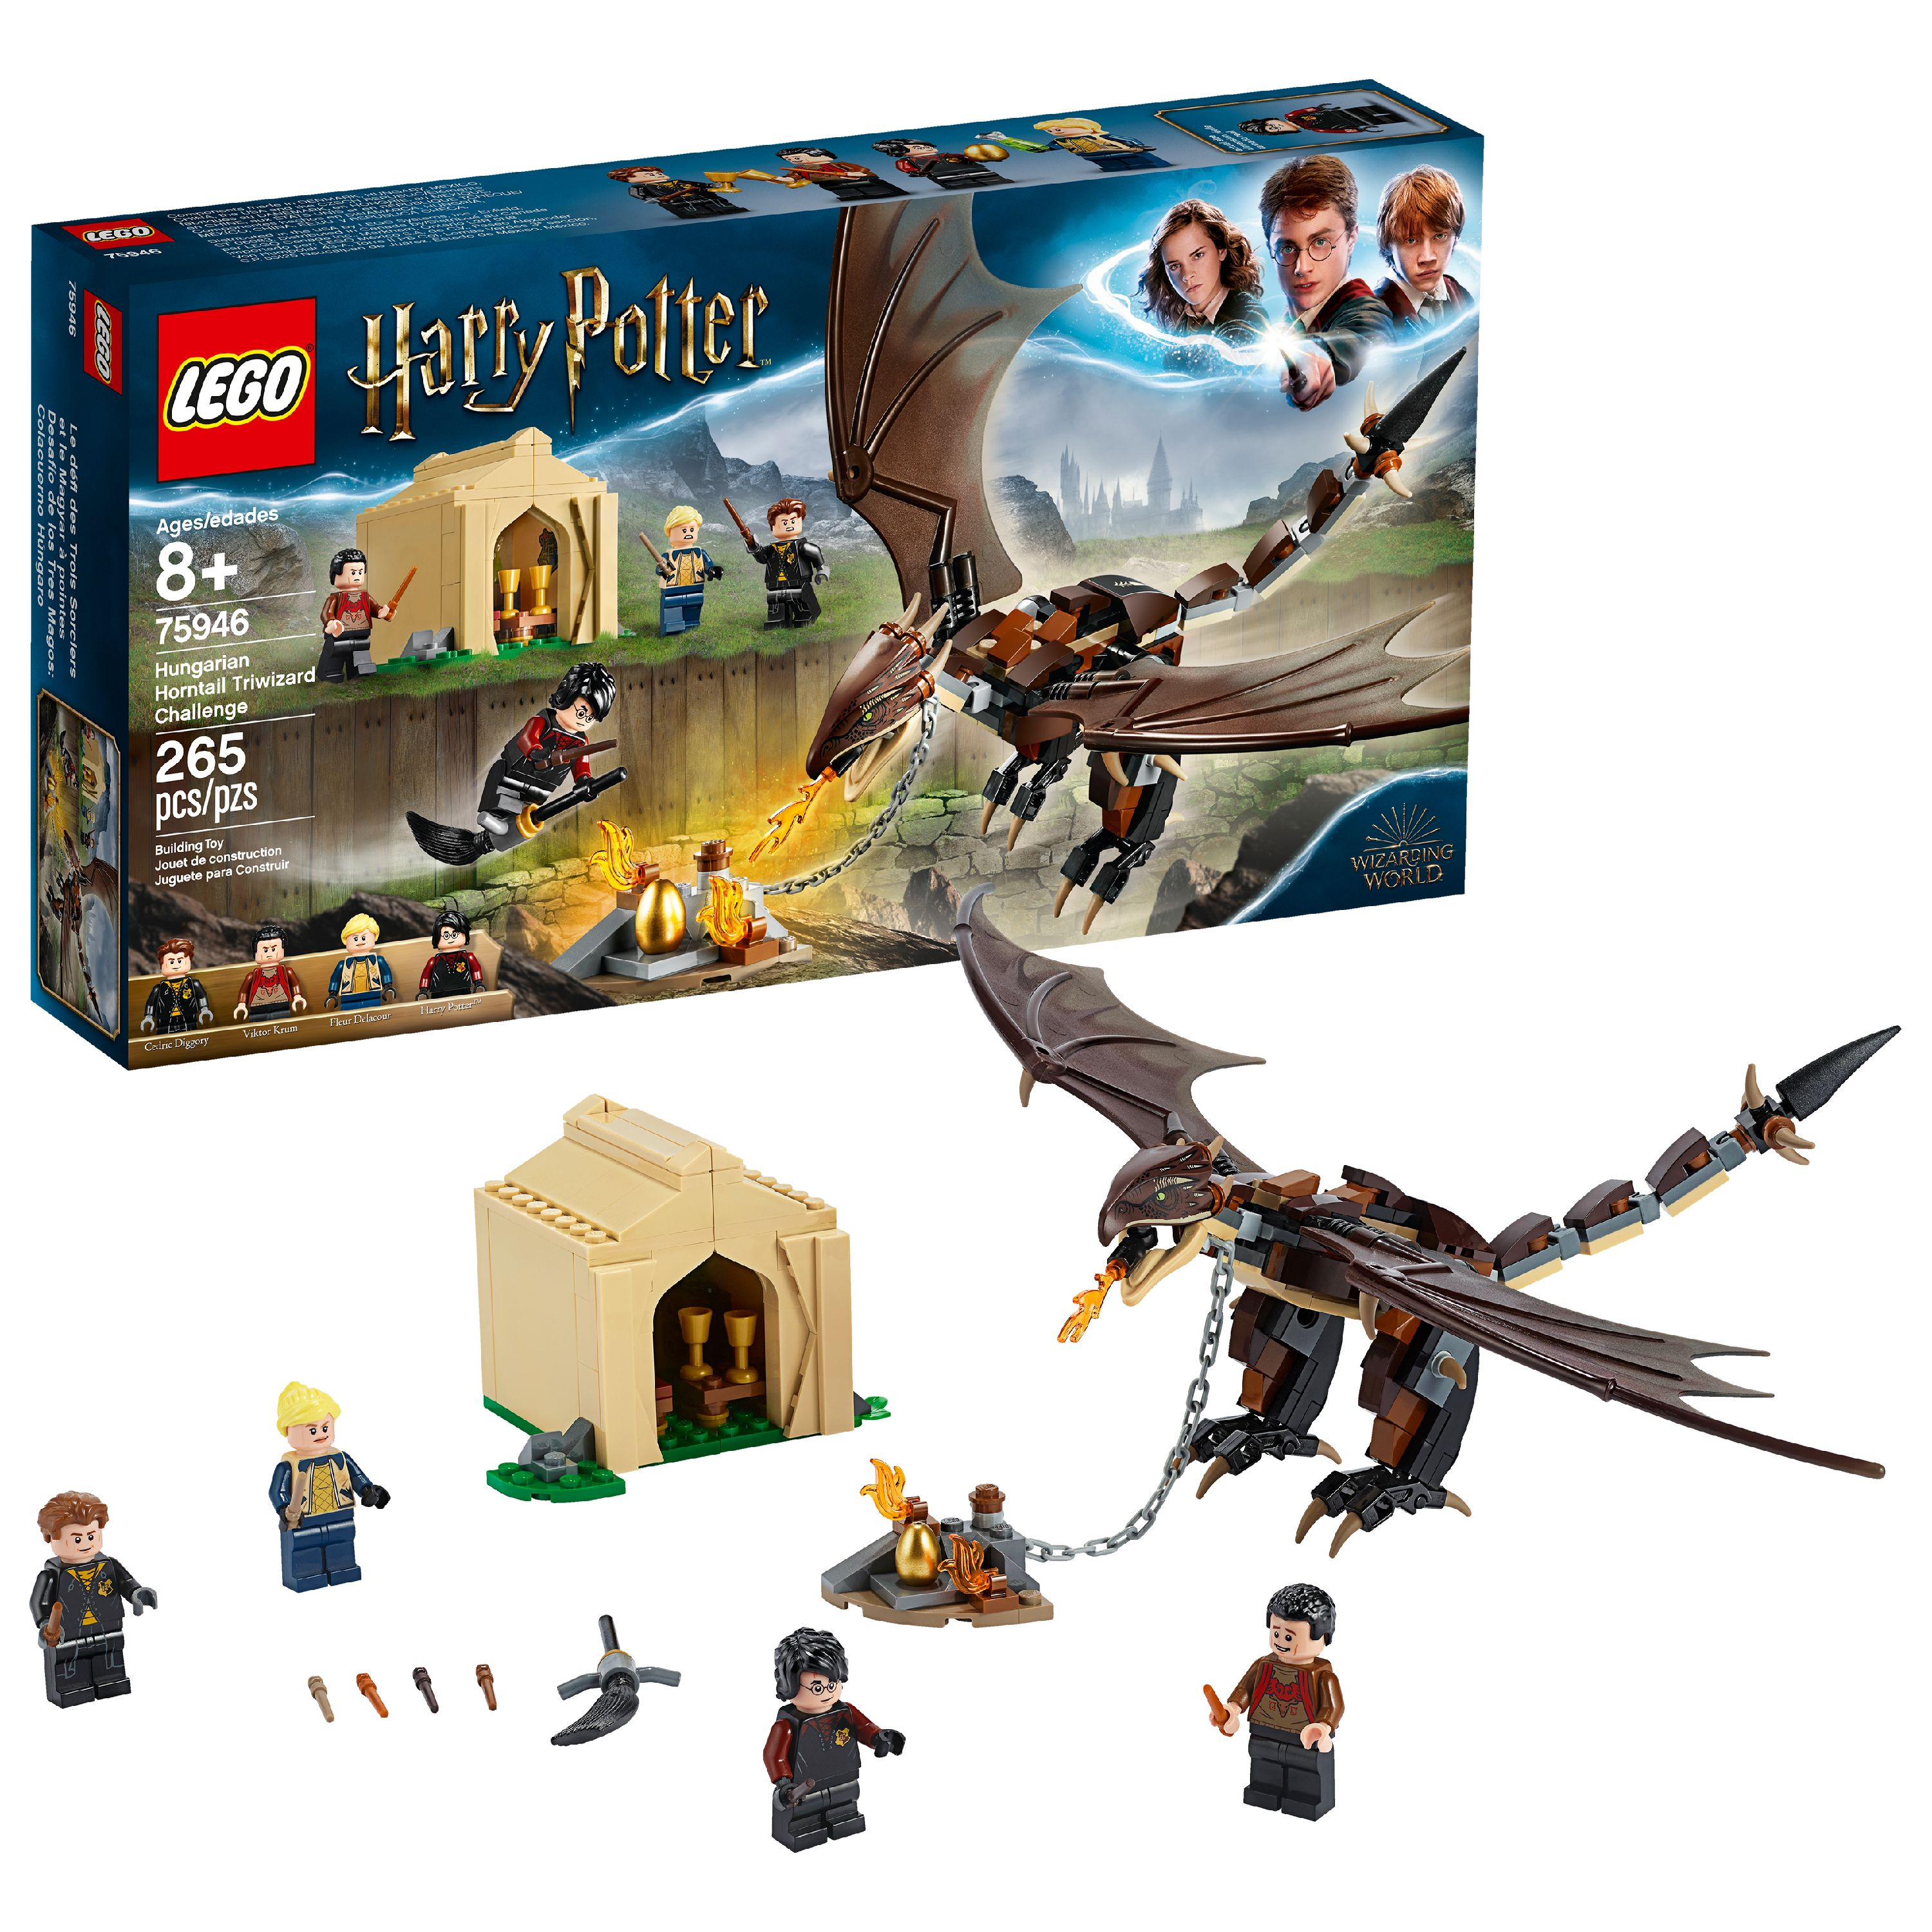 LEGO Harry Potter Hungarian Horntail Triwizard Challenge 75946 (265 Pieces)